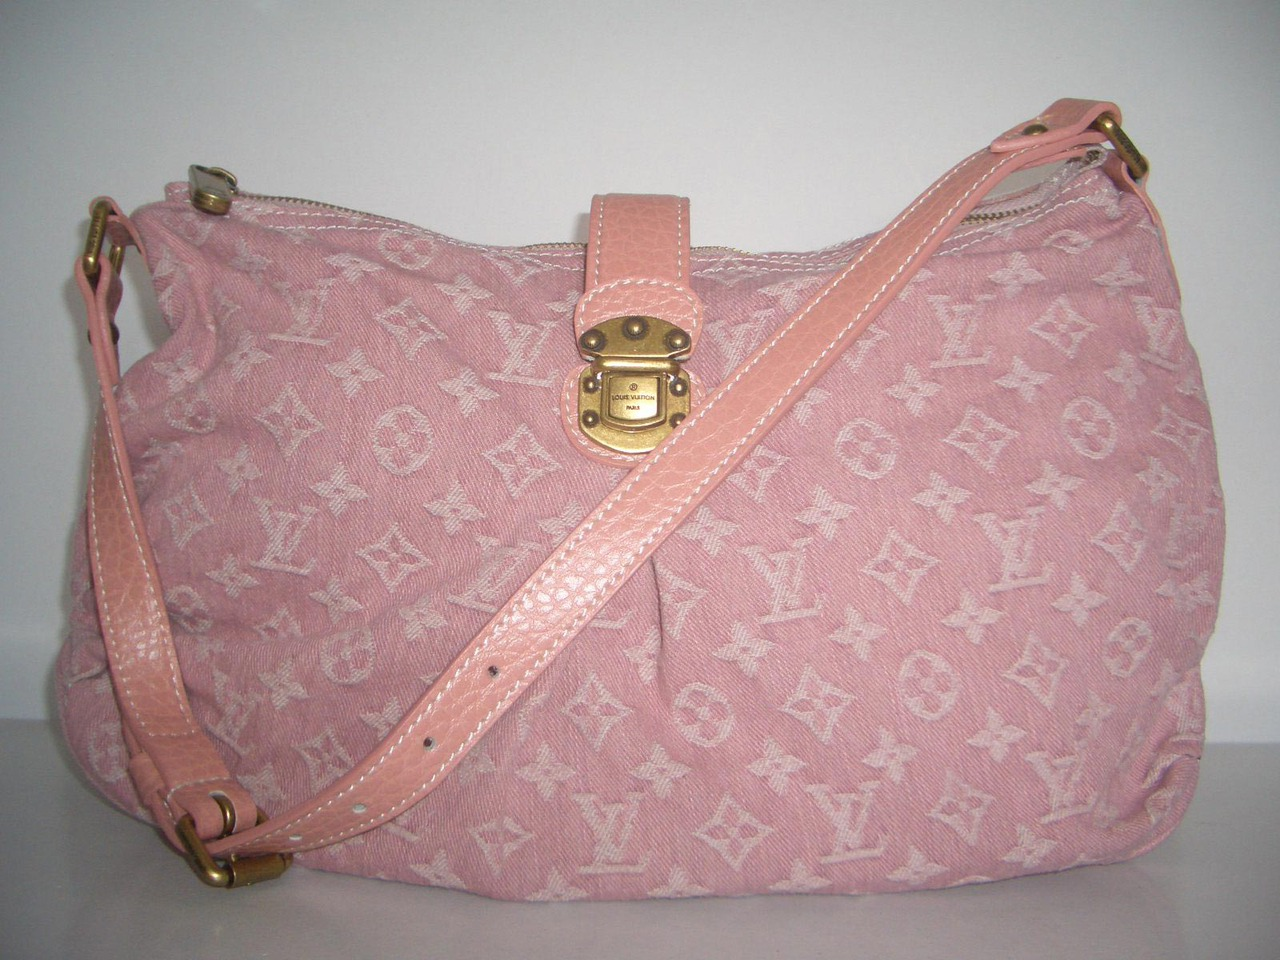 LV Monogram Idyle Slightly Denim Pink  M95833